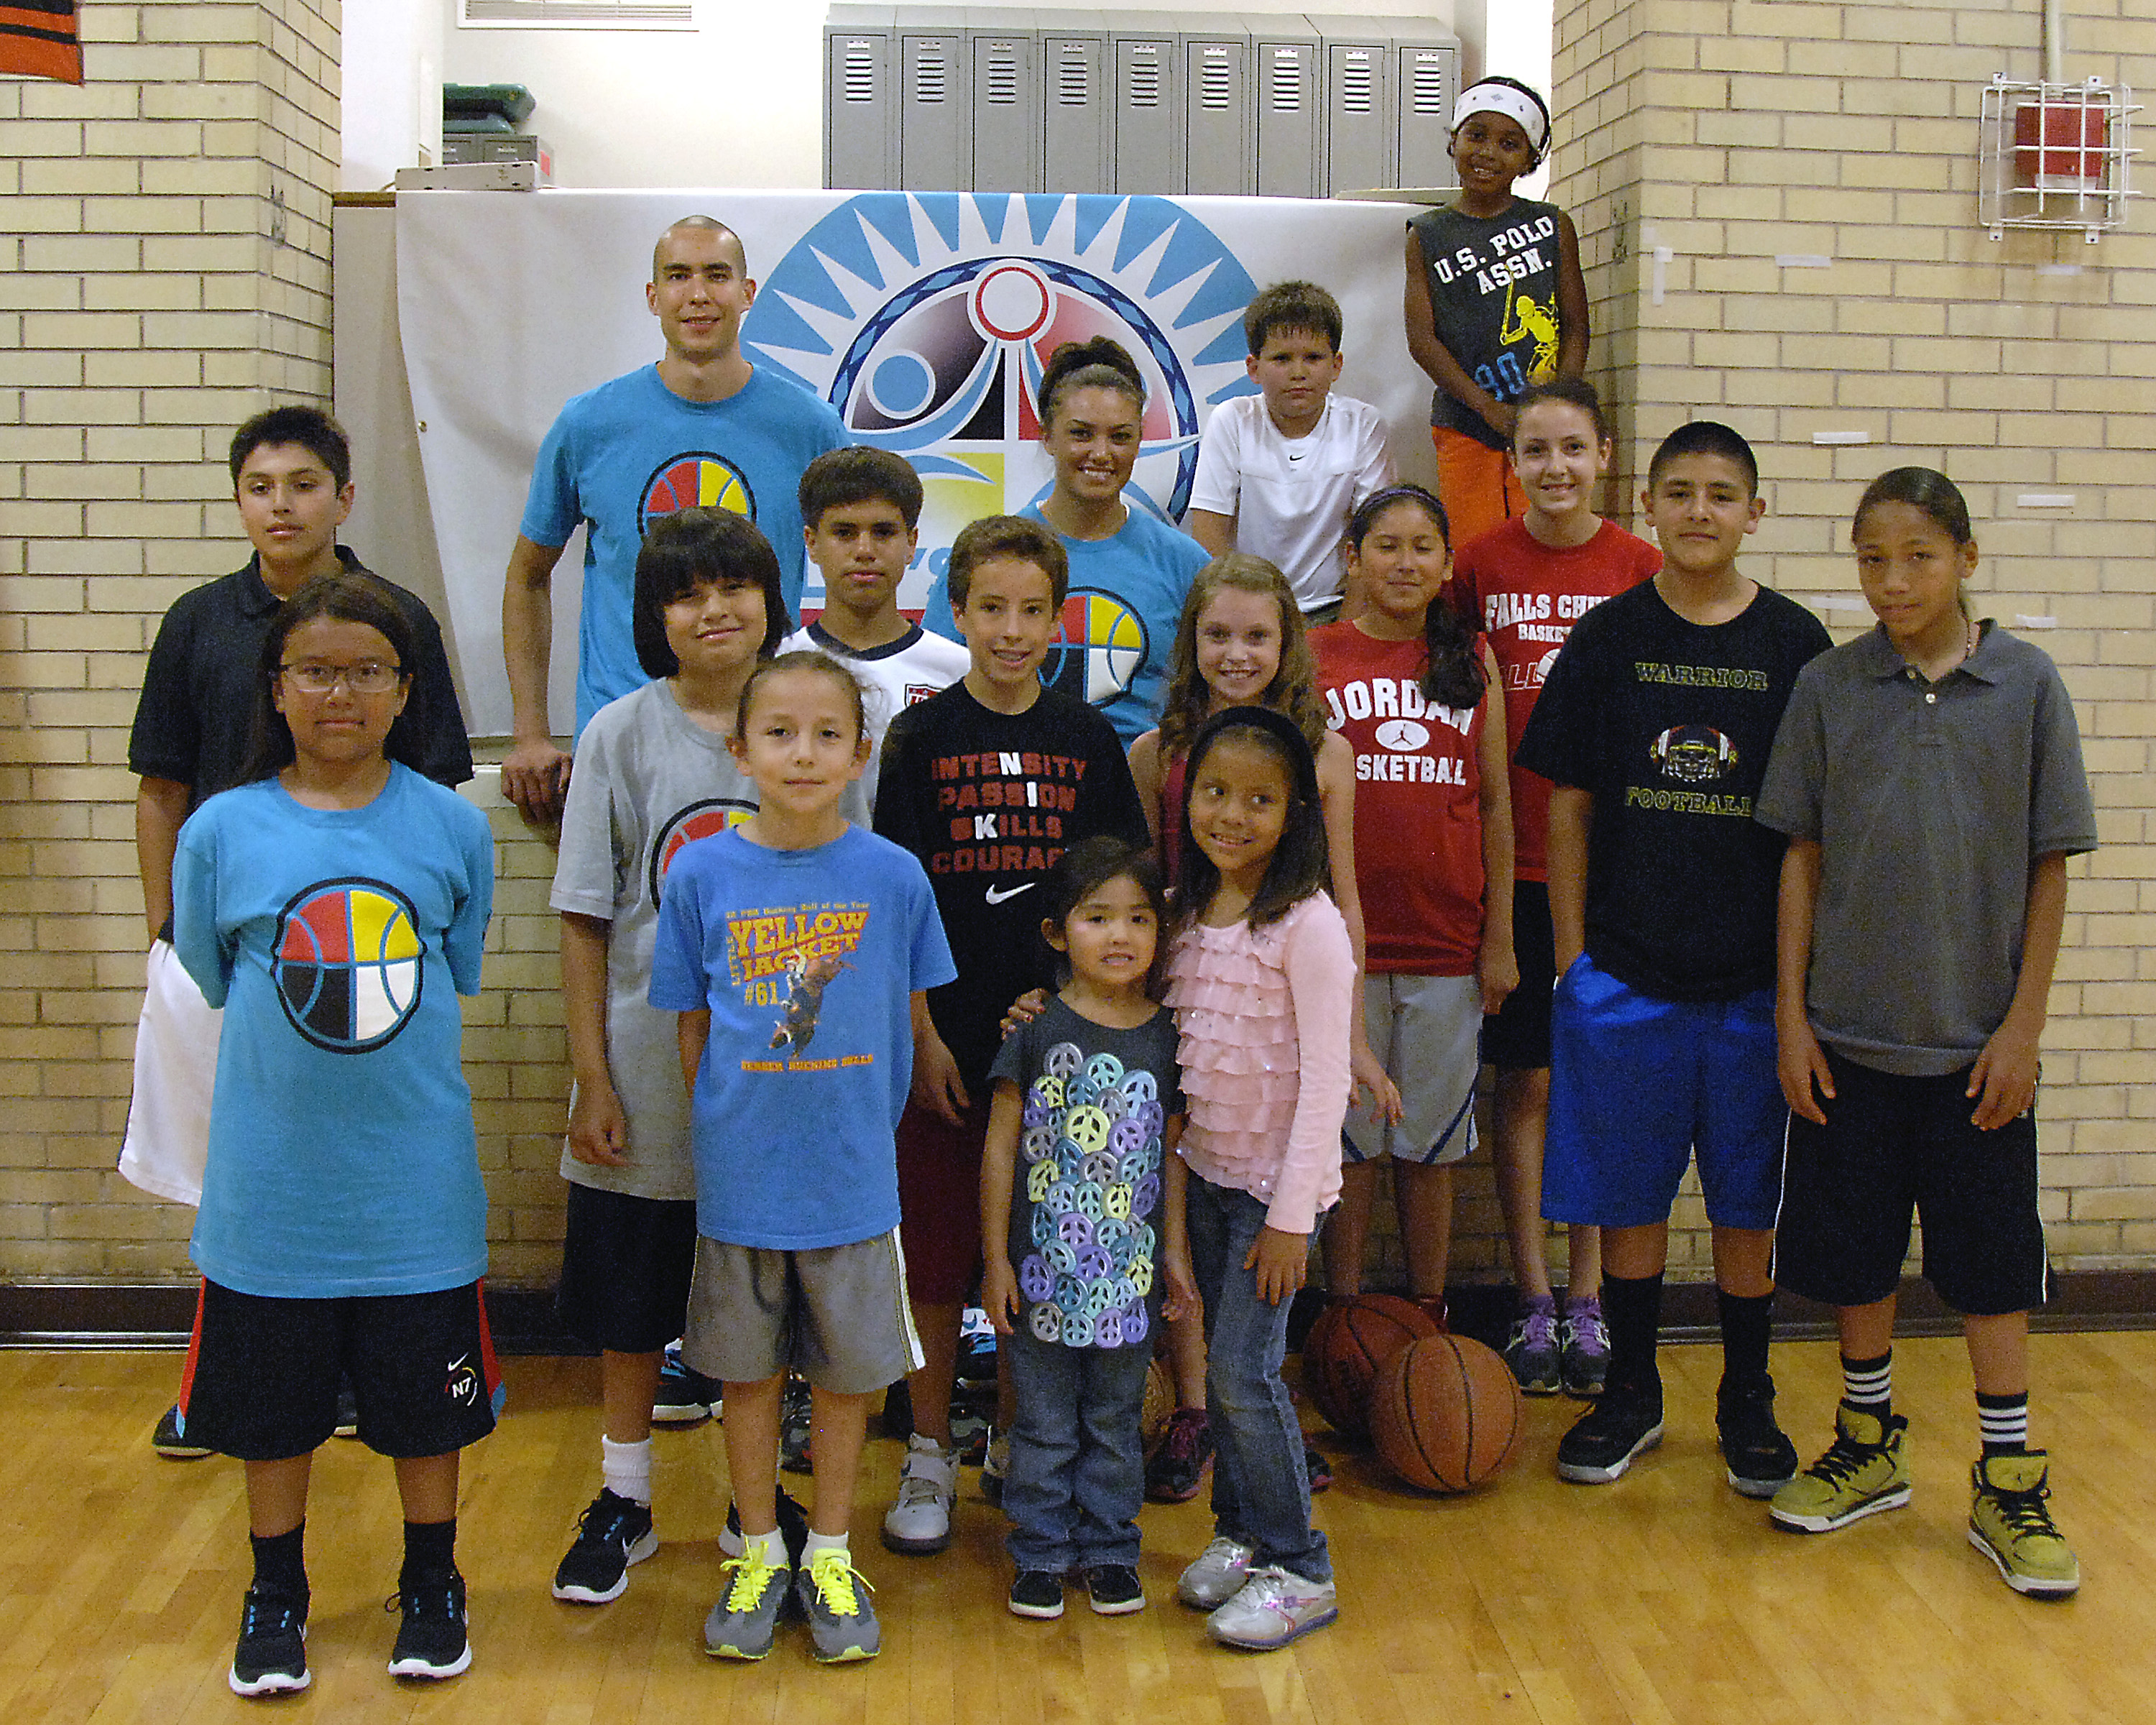 LMIC Youth Basketball Clinic at the U.S. Department of the Interior